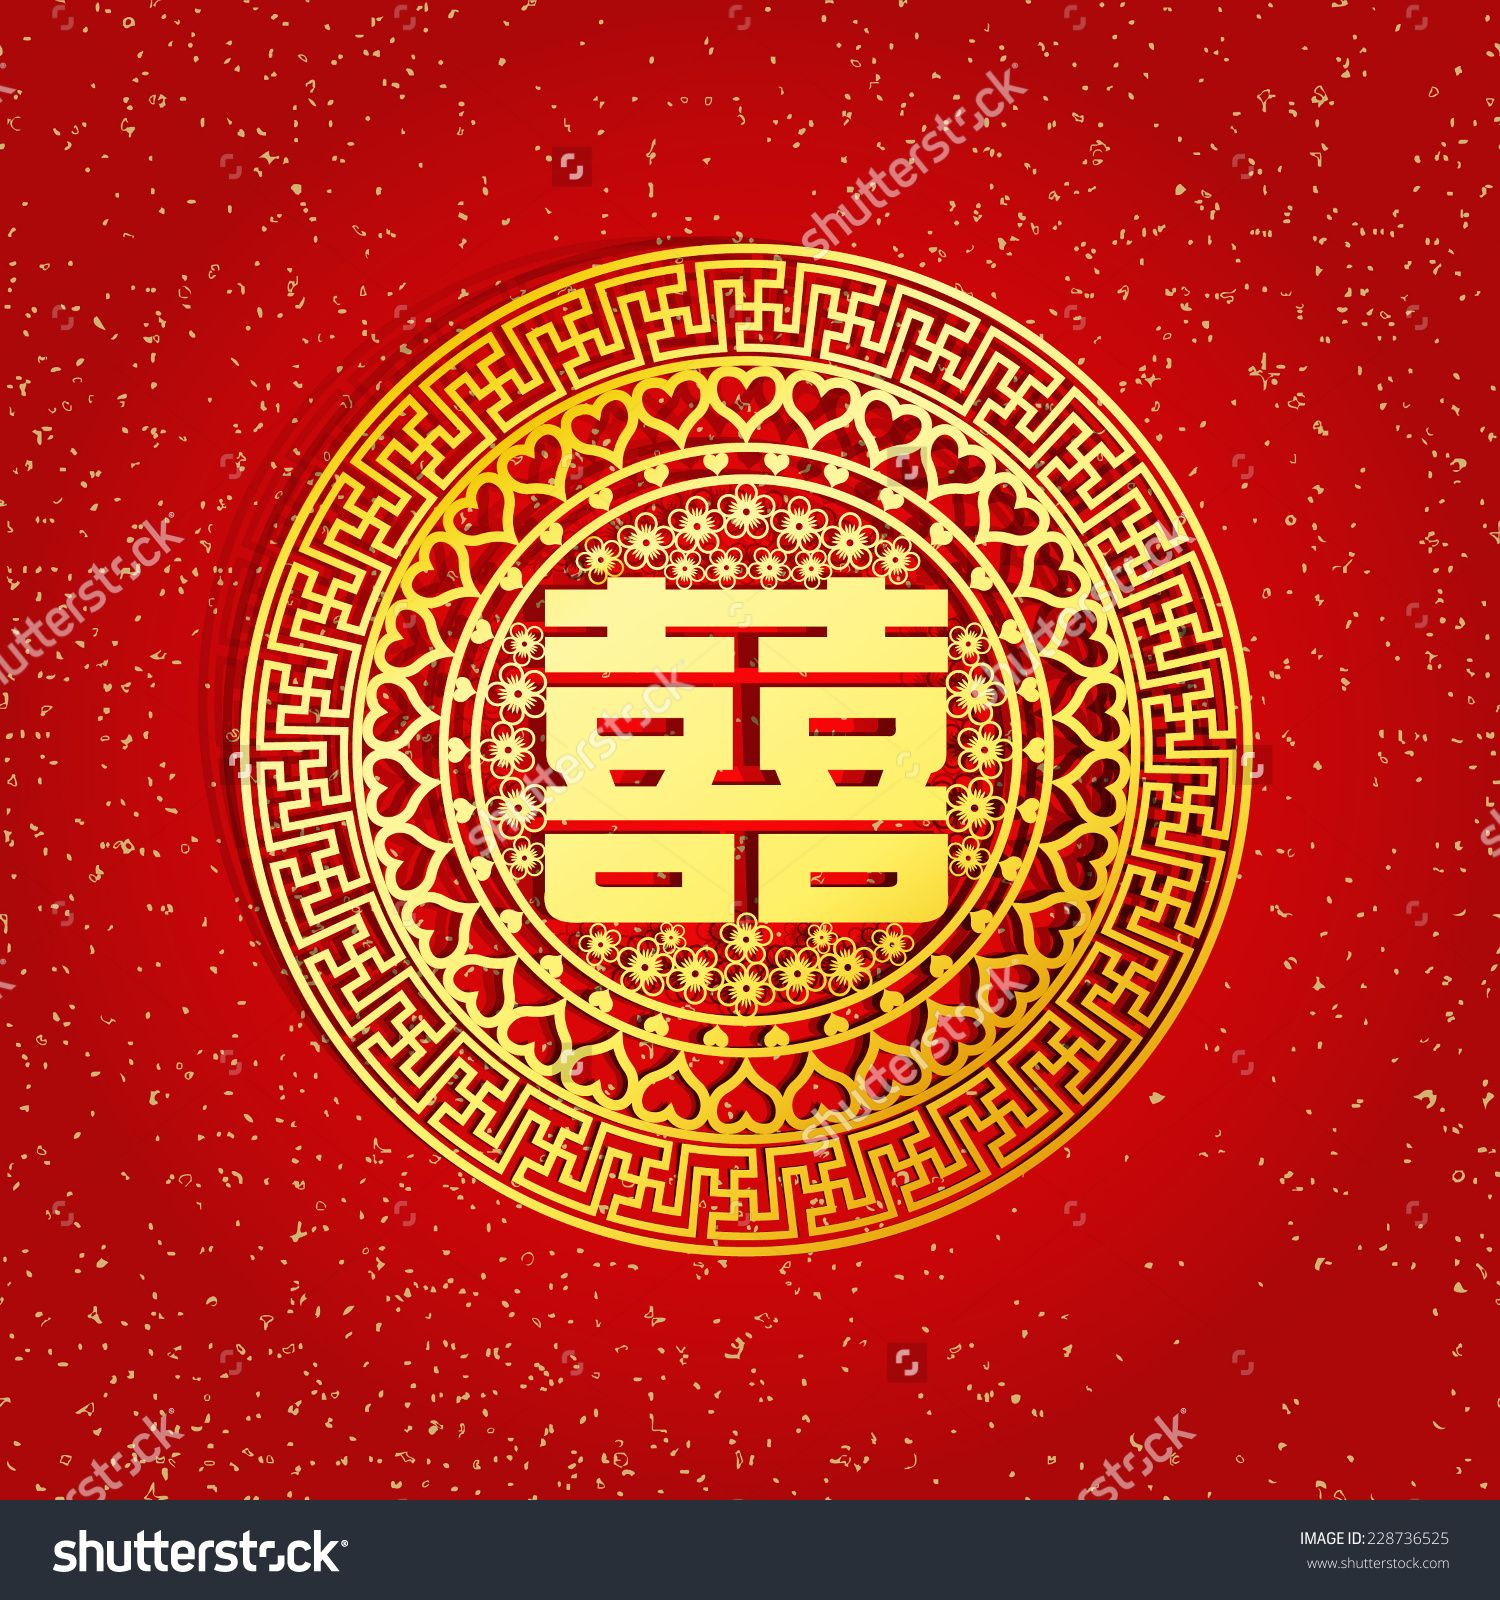 Chinese happy symbol image collections symbol and sign ideas stock vector chinese symbol of double happiness and happy marriage stock vector chinese symbol of double buycottarizona